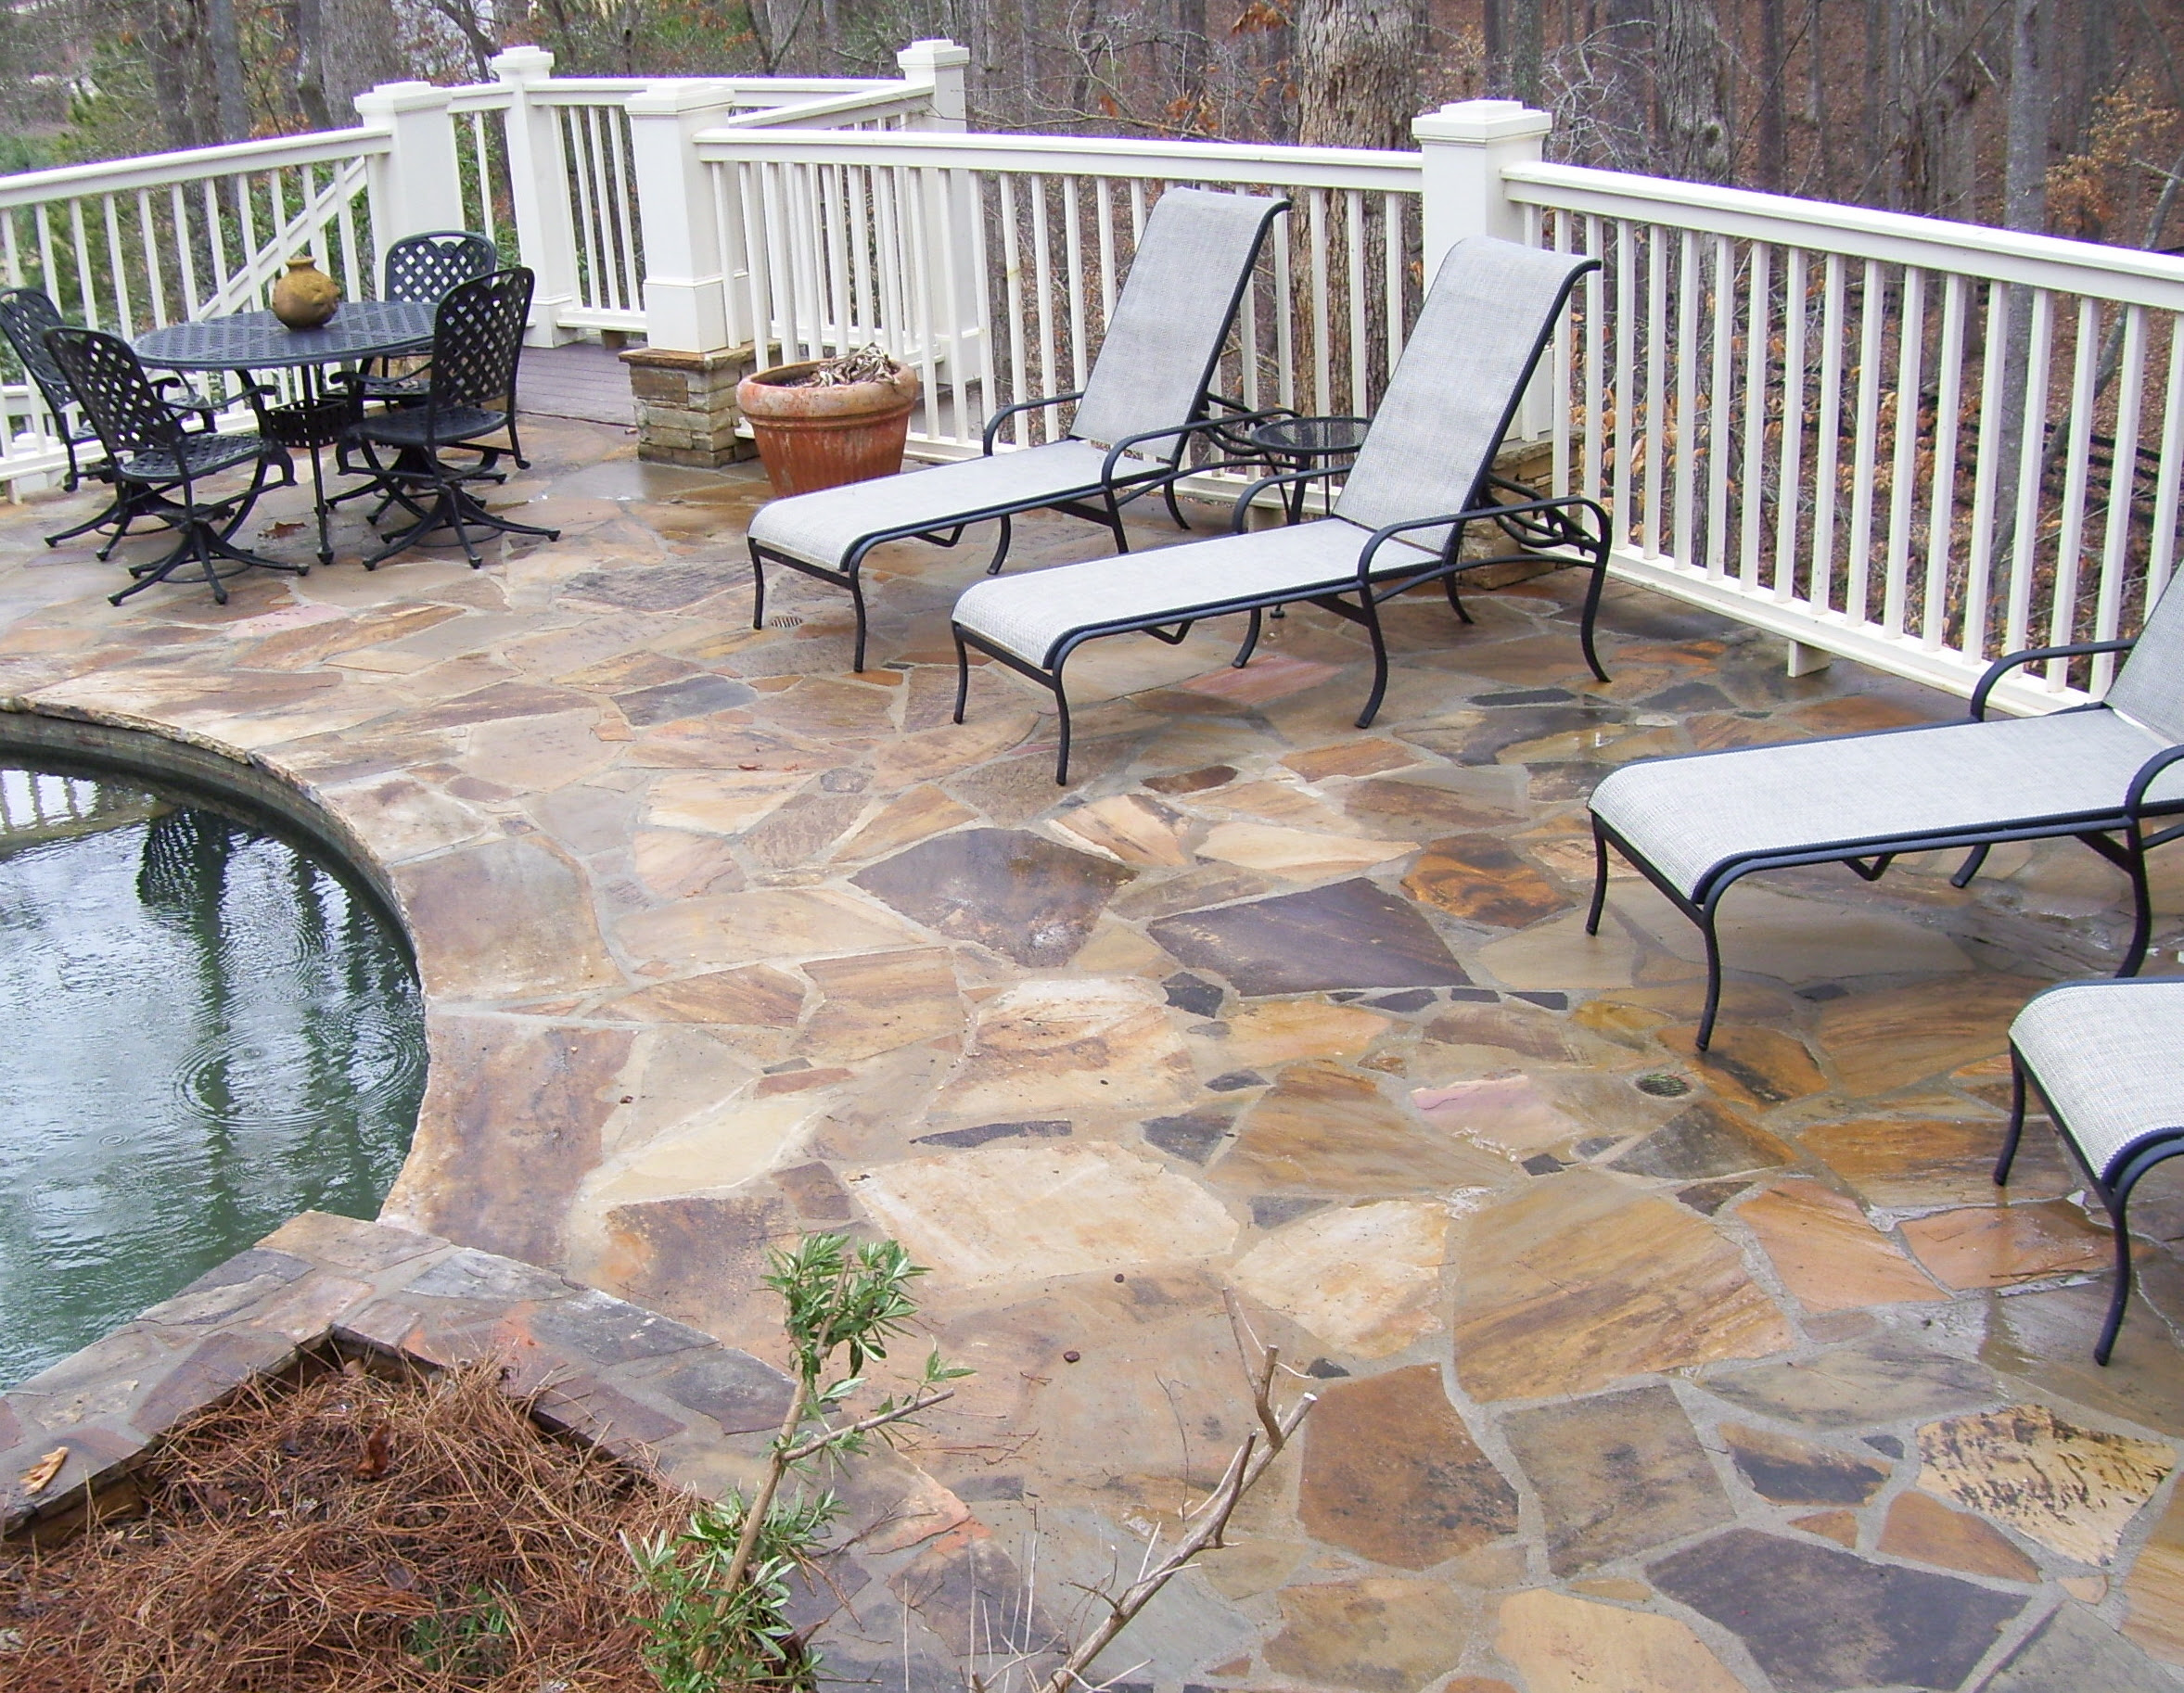 Pin Stone Deck Outdoor Furniture Fireplace Mirror Pool on Pinterest